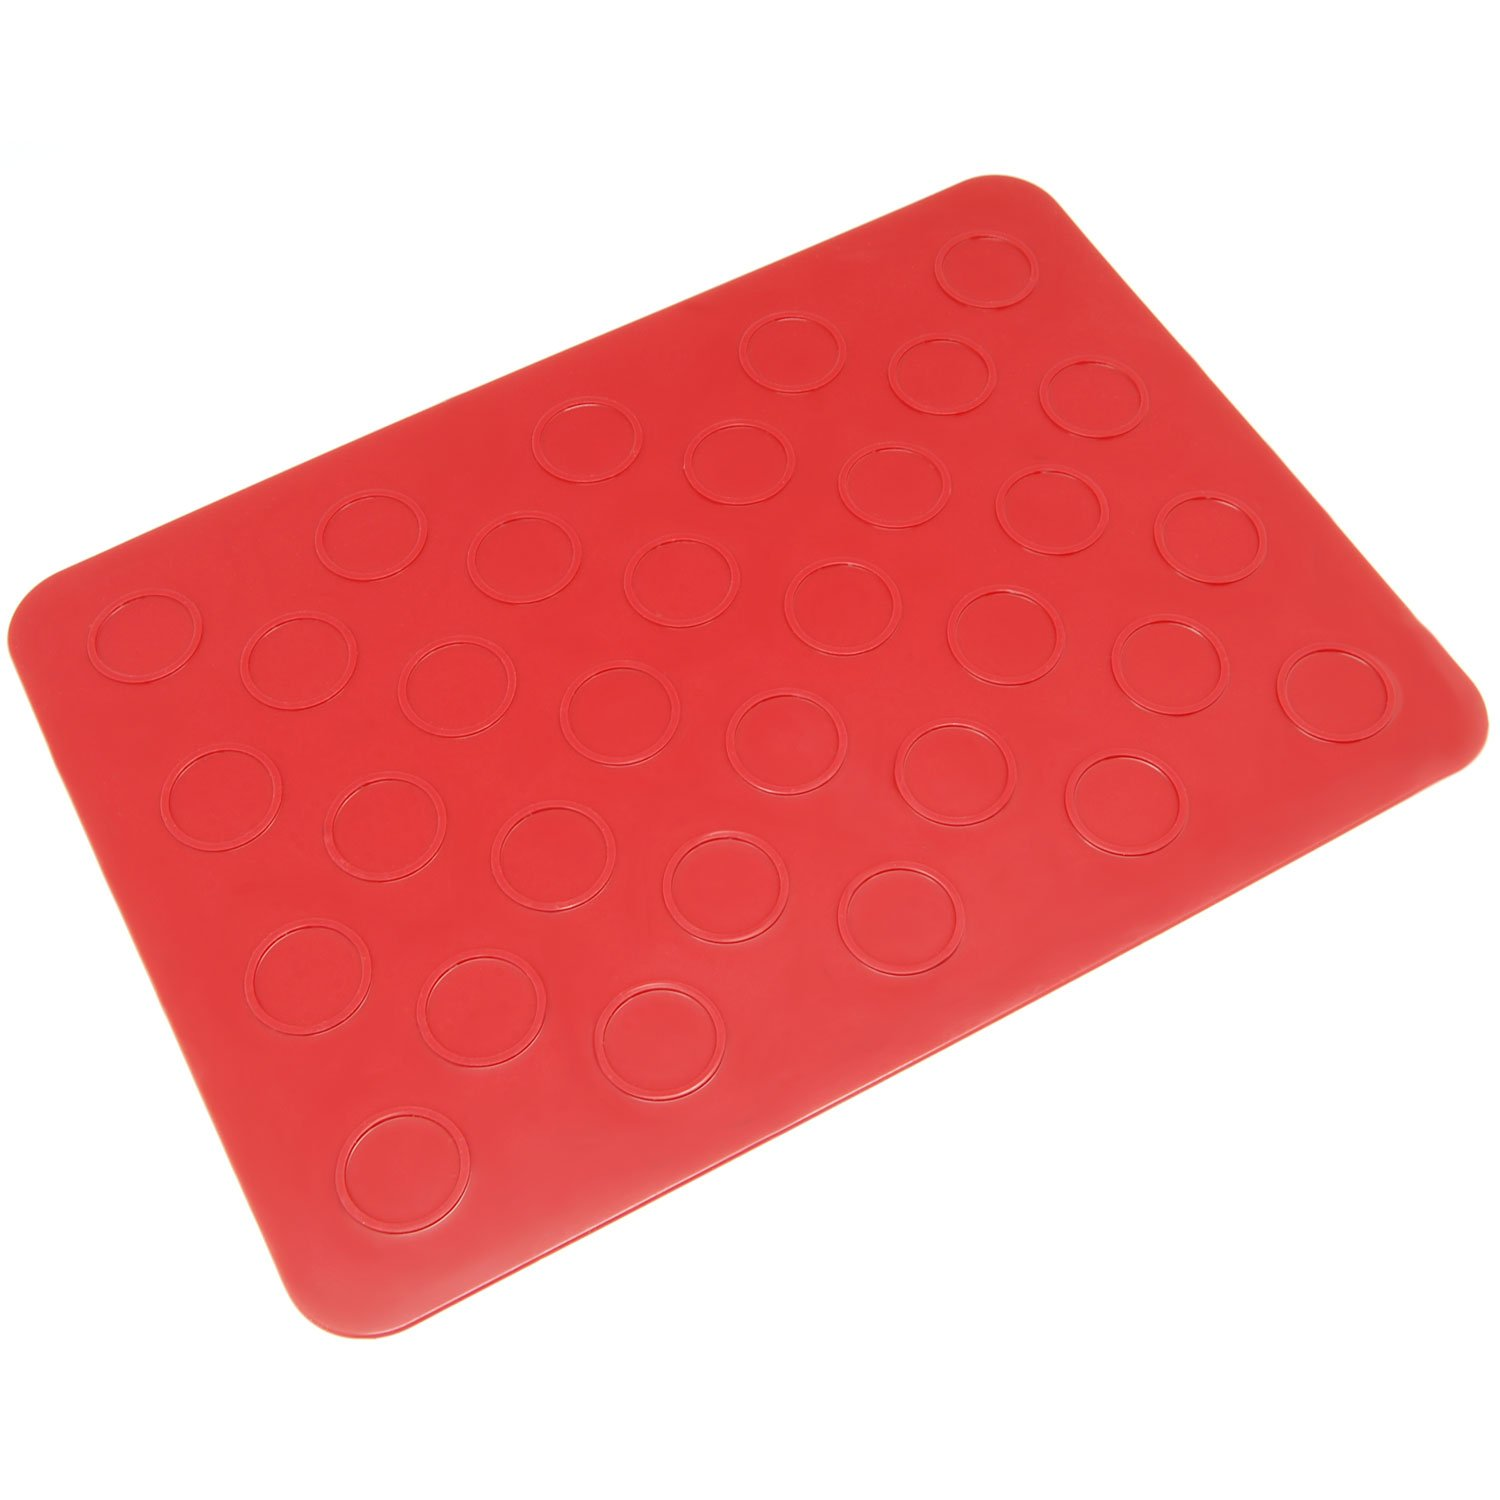 Freshware CB-402RD 10-Circle Macaron, Whoopie Pie, Cookie and Creme Puff Silicone Mat, Red, Small Inc